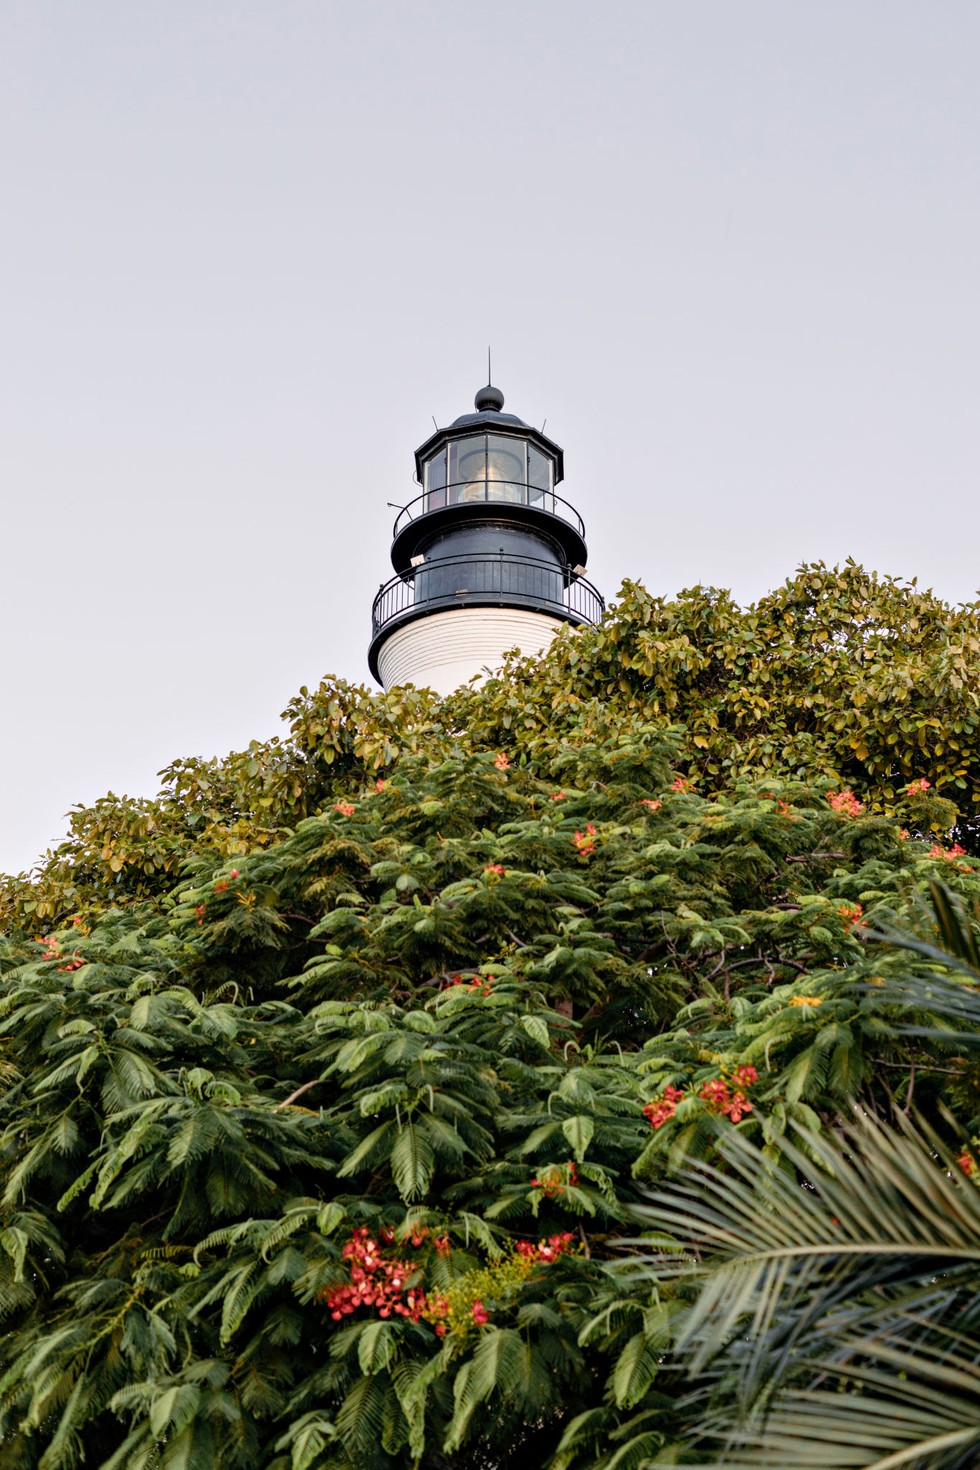 The Key West lighthouse